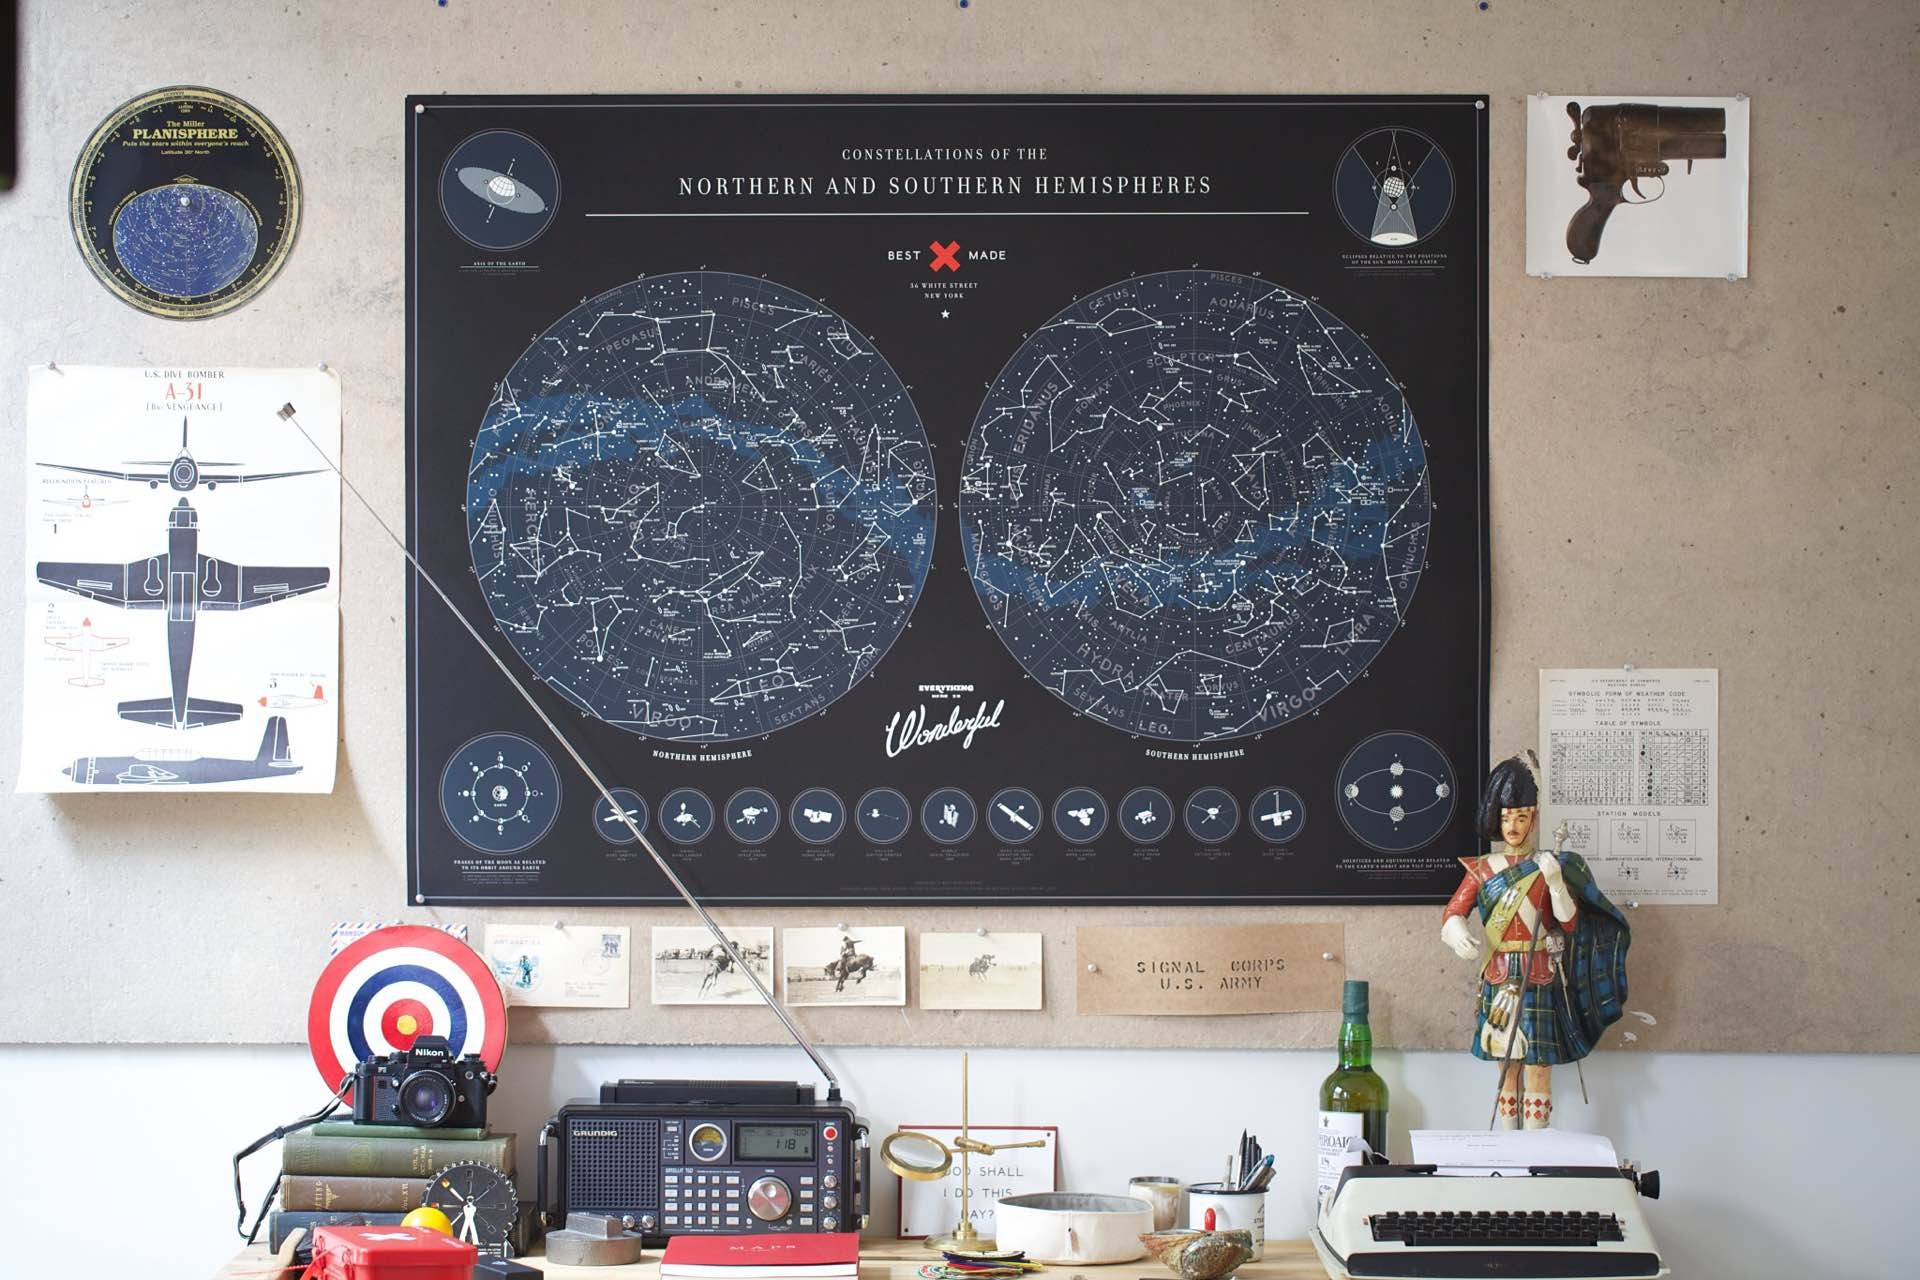 best-made-co-map-of-the-constellations-2-peter-buchanan-smith